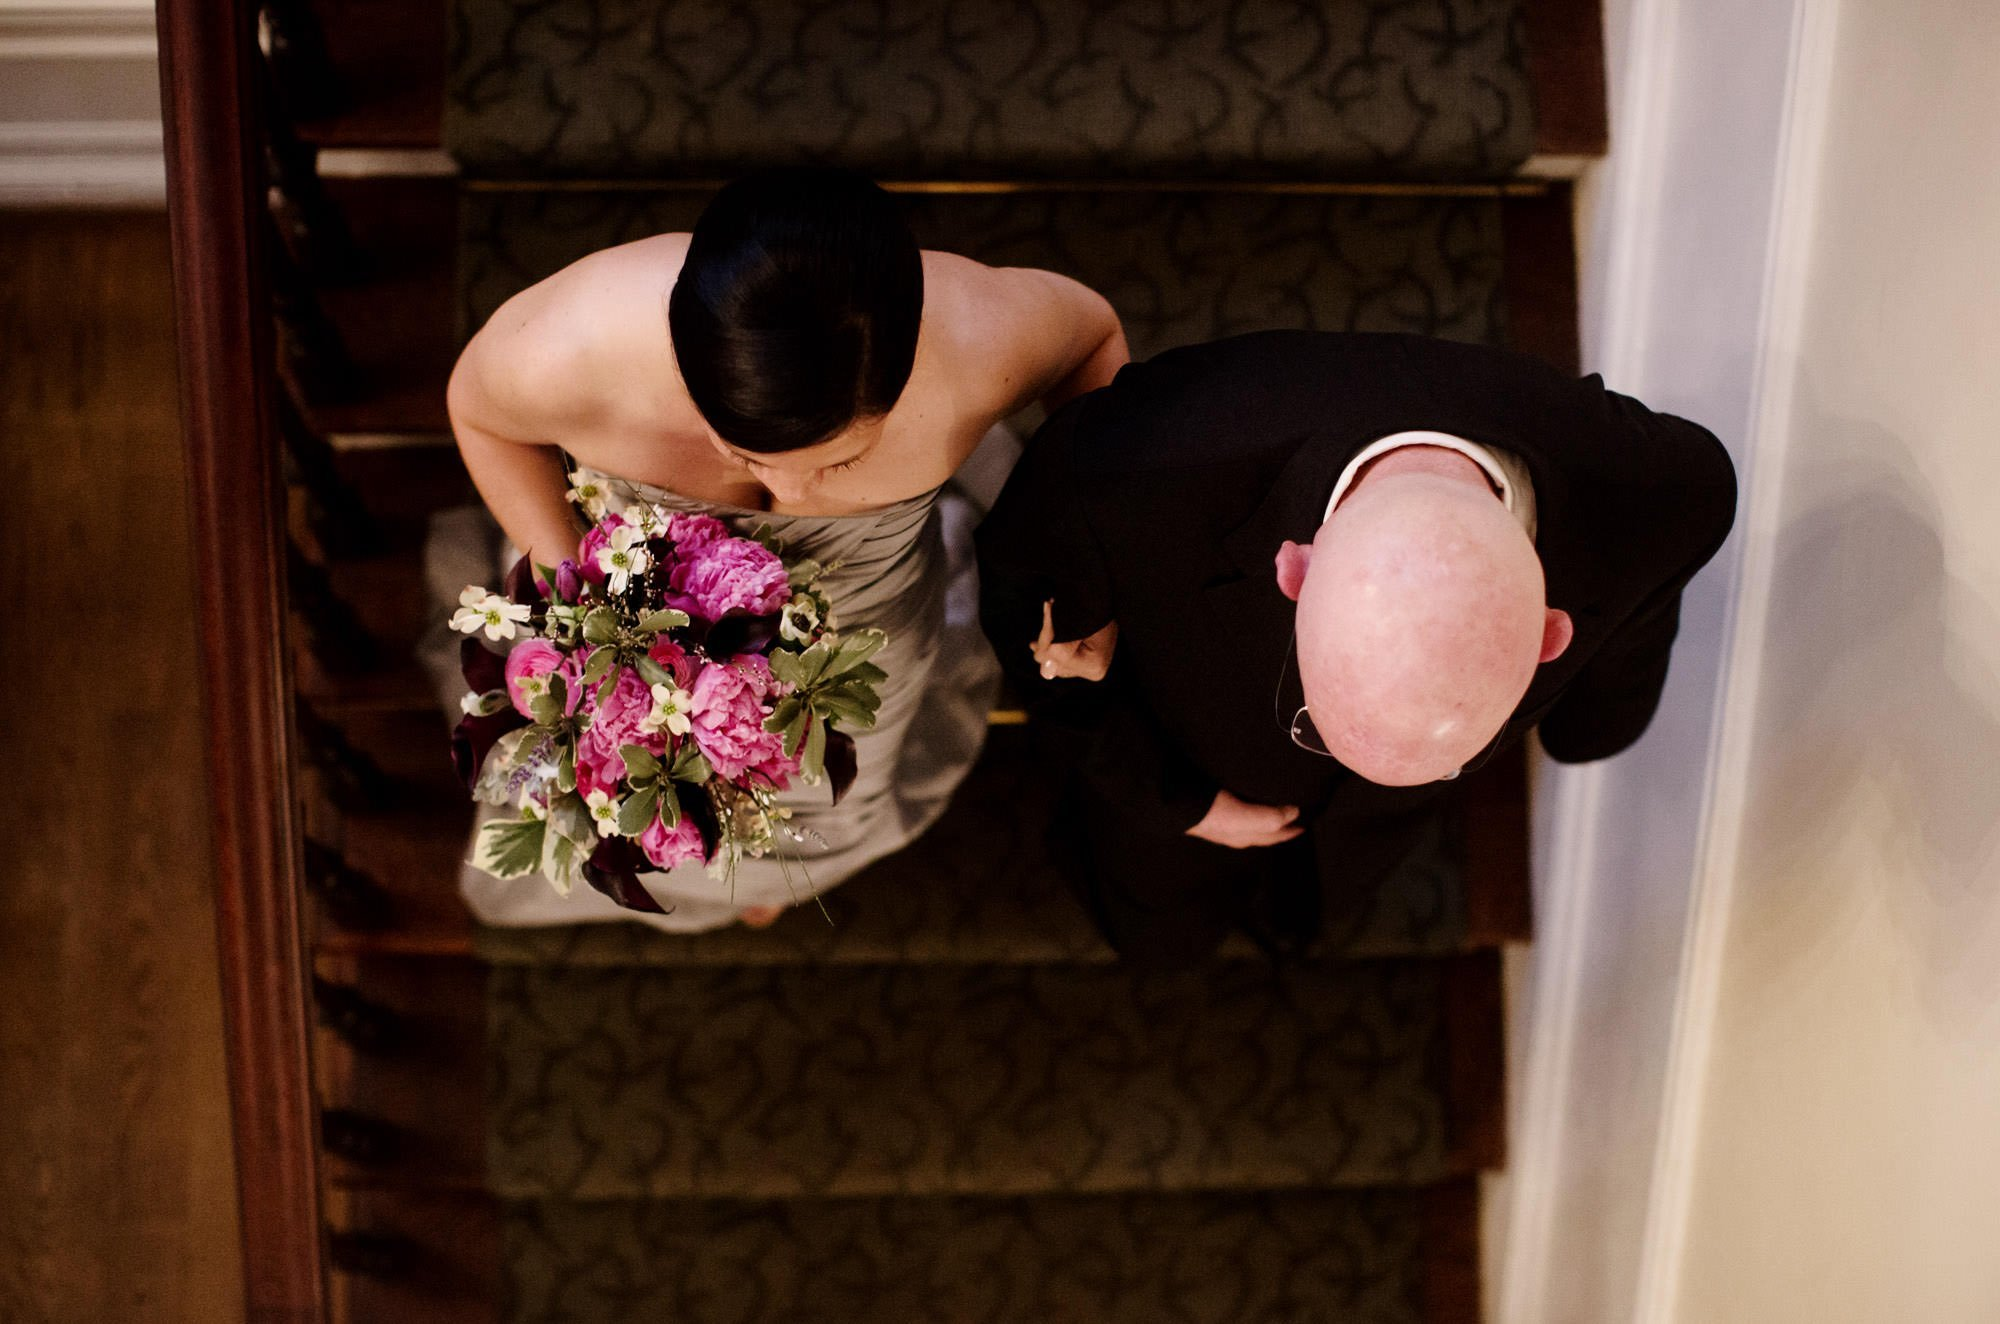 The bride and her father walk down the steps during the wedding ceremony at Woodend Sanctuary.